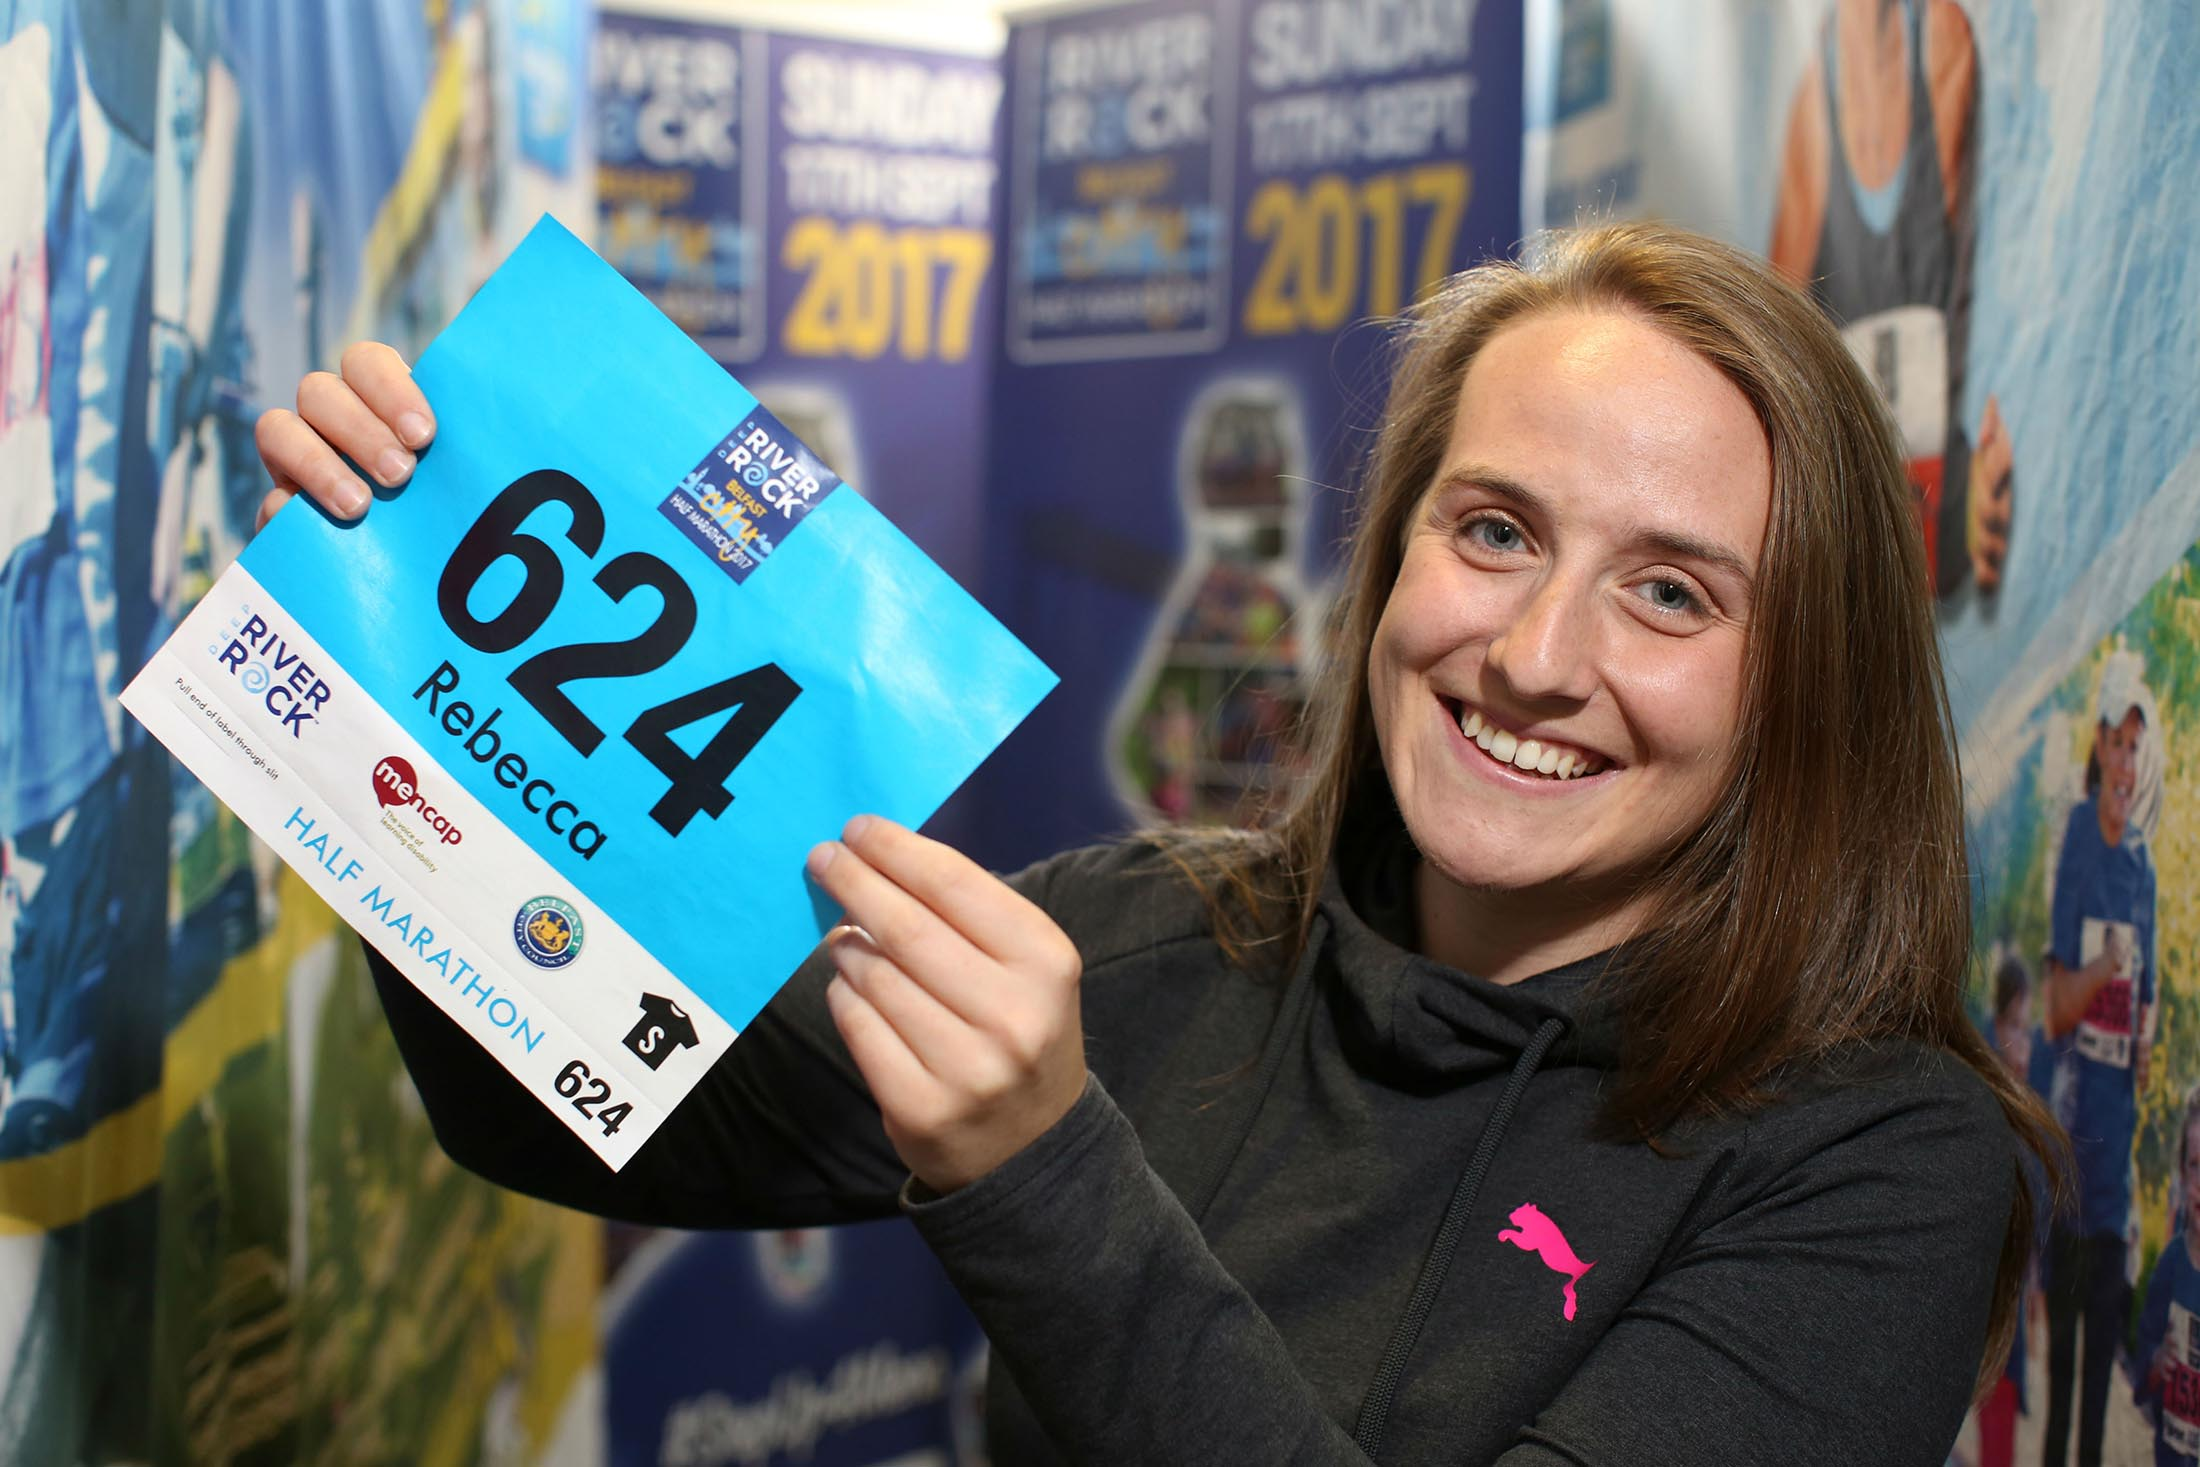 Last Chance to Personalise Your Race Number for the Deep RiverRock Belfast City Half Marathon